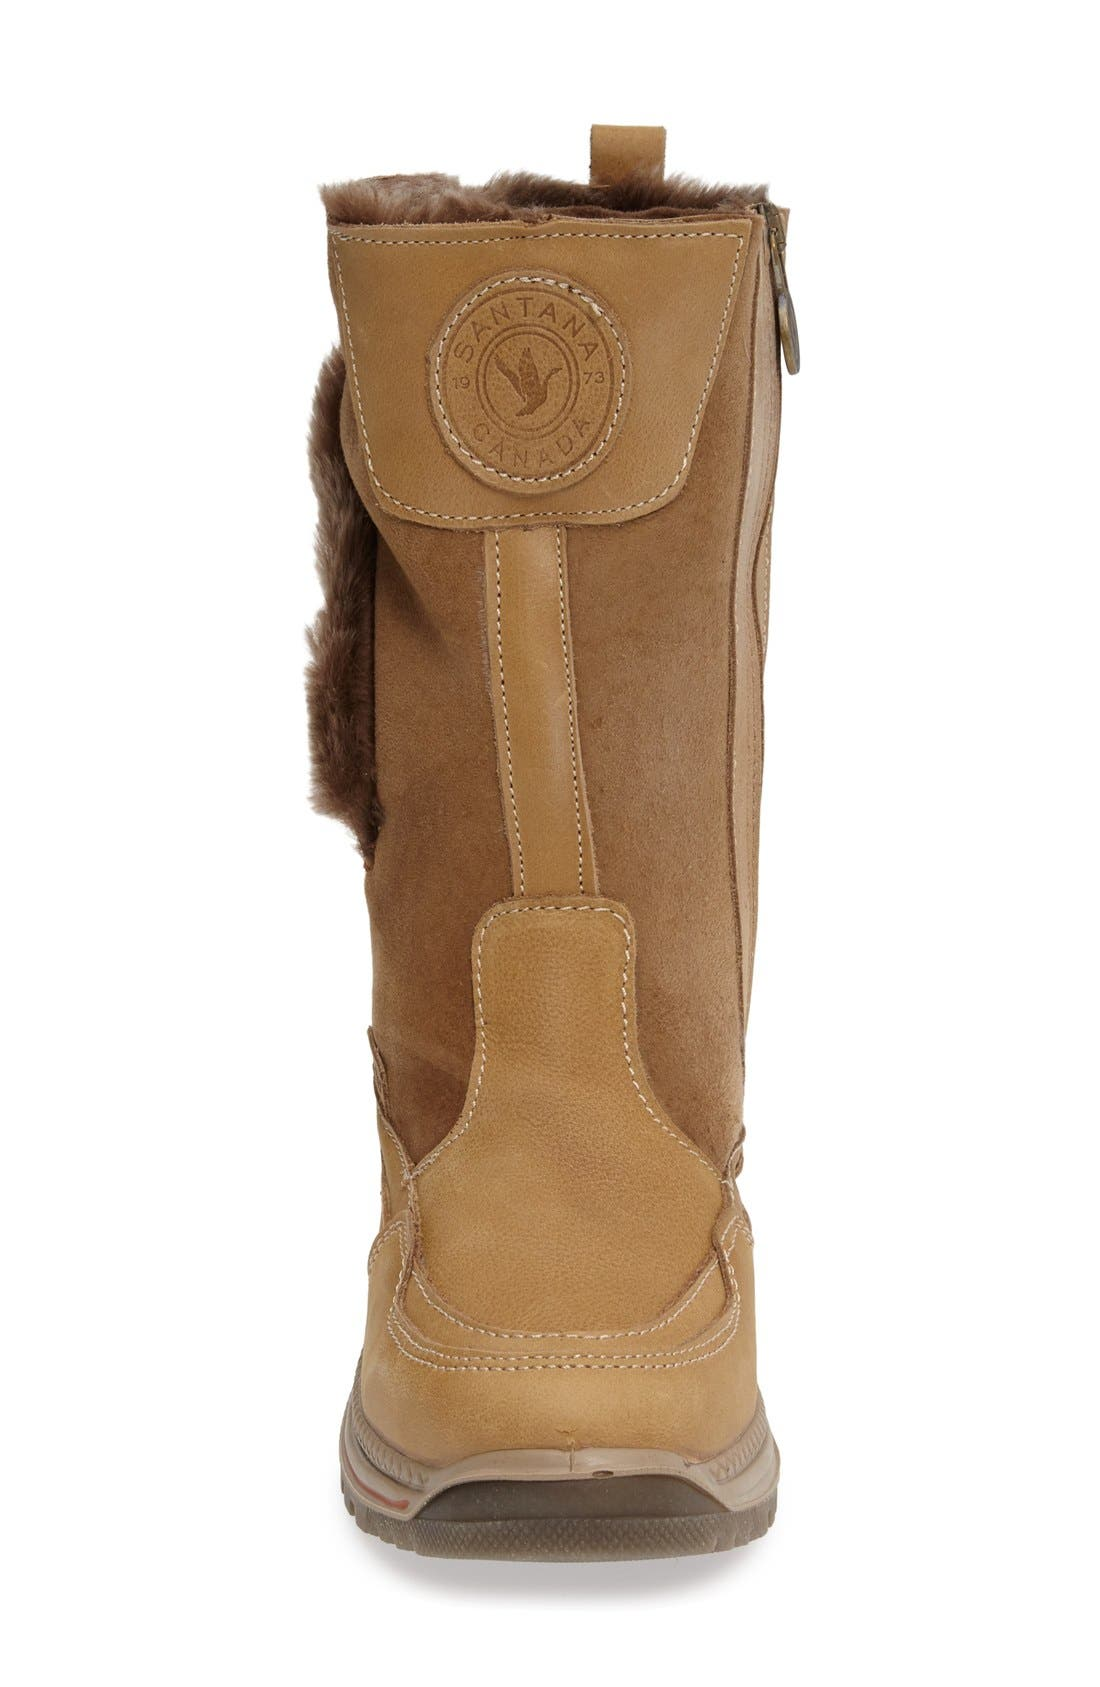 Seraphine Genuine Shearling Waterproof Winter Boot,                             Alternate thumbnail 3, color,                             Camel Leather